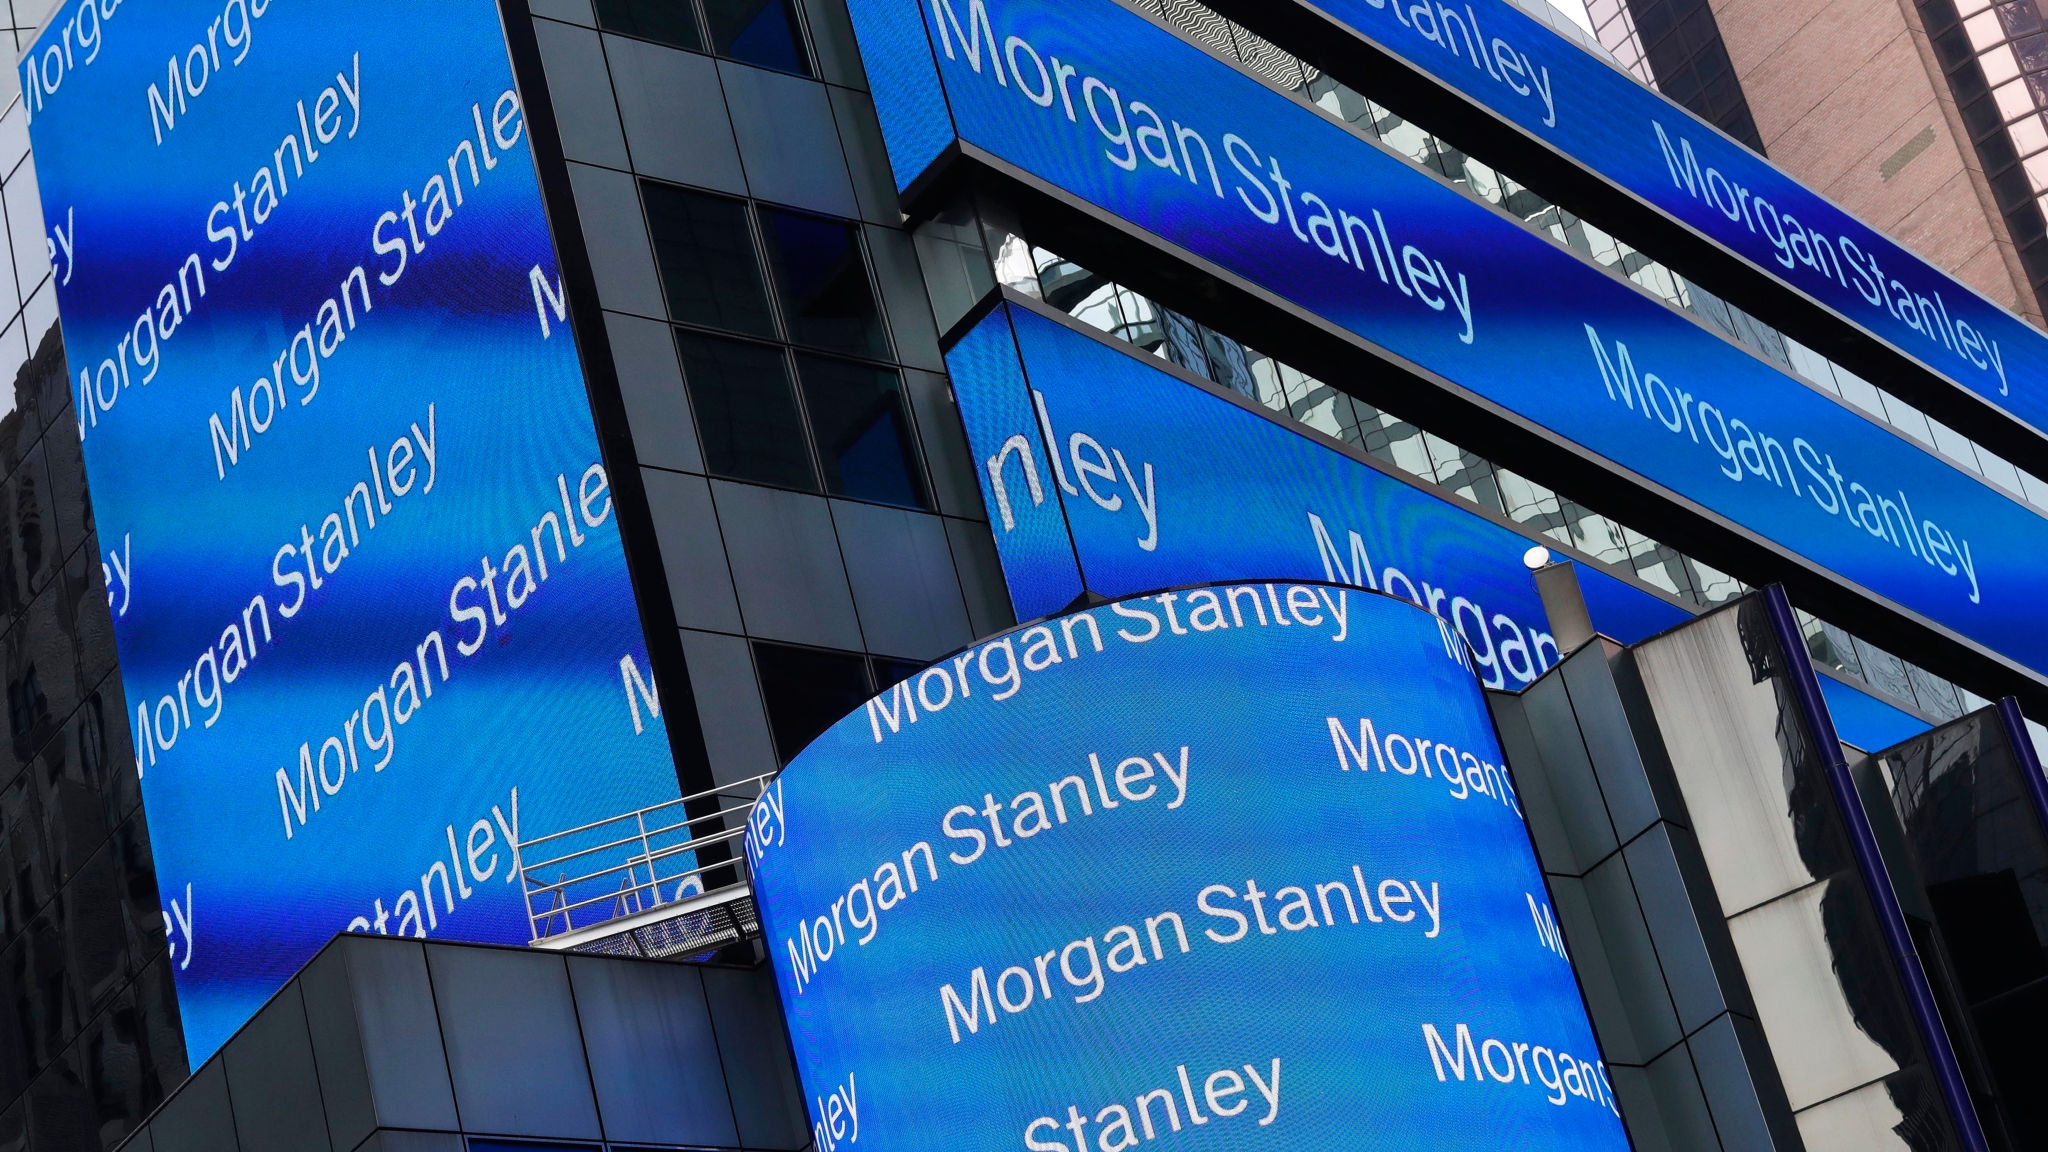 Morgan Stanley investors fret about lower interest rates